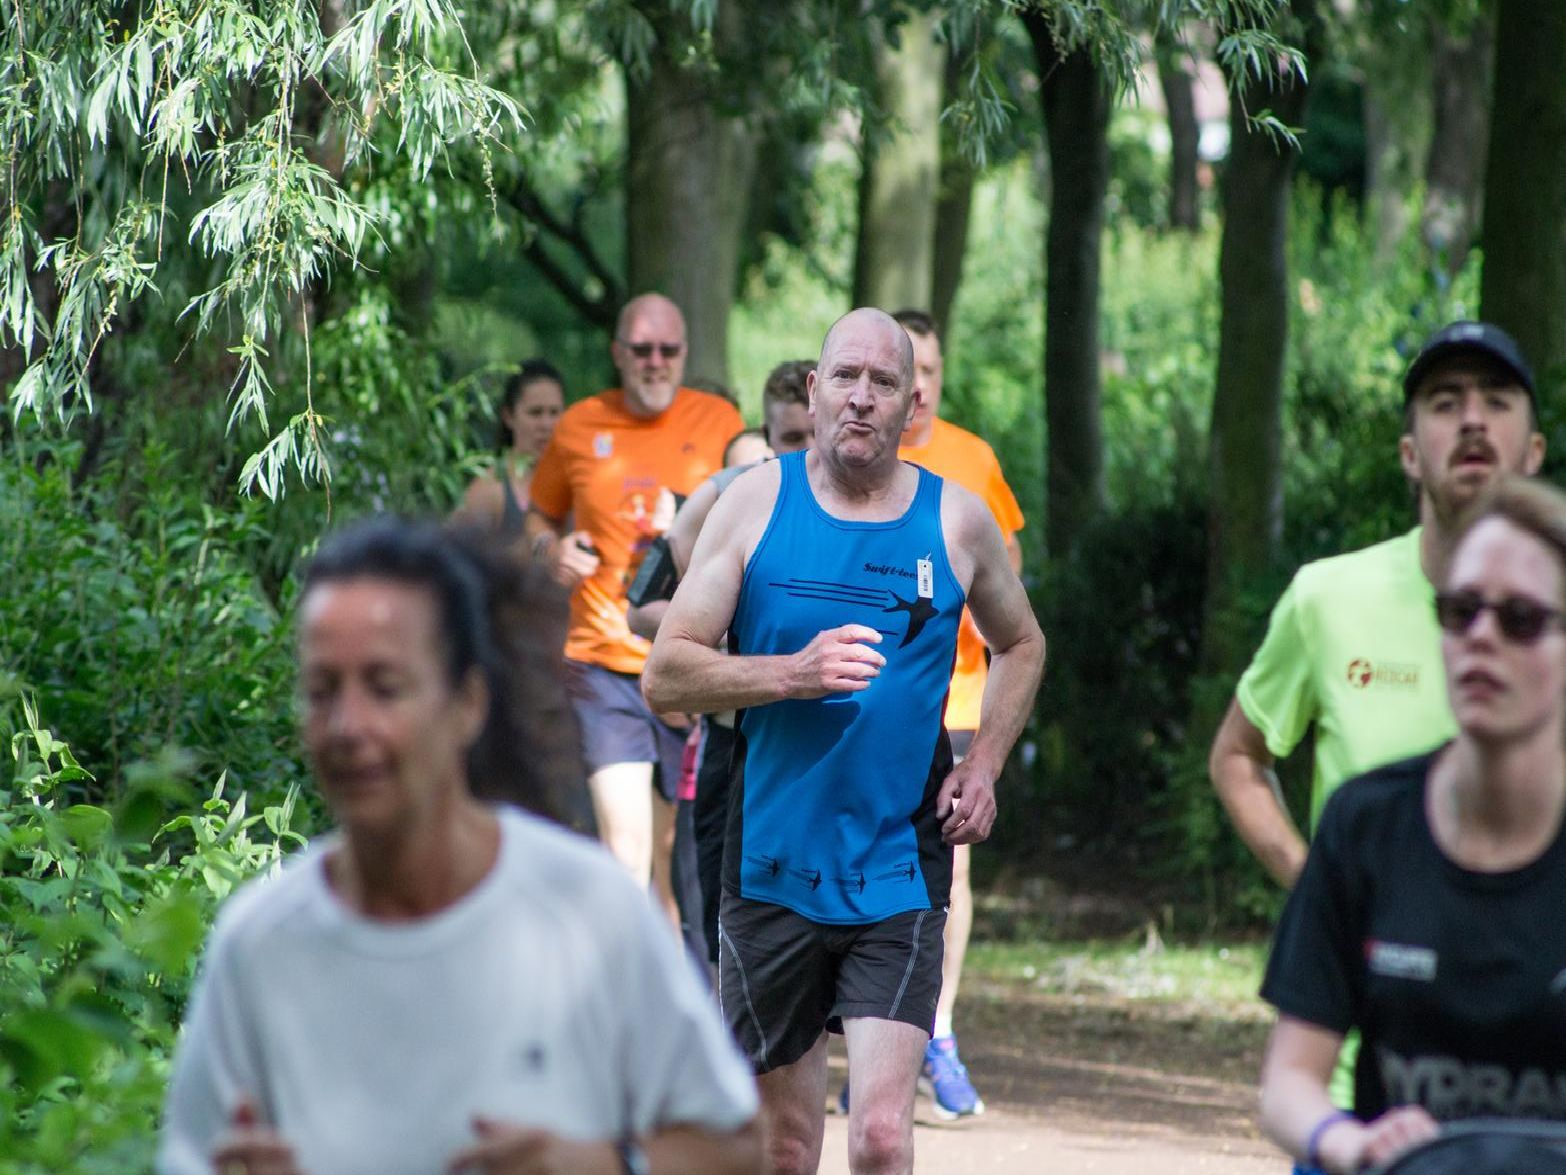 Parkruns are growing rapidly in popularity in Scotland